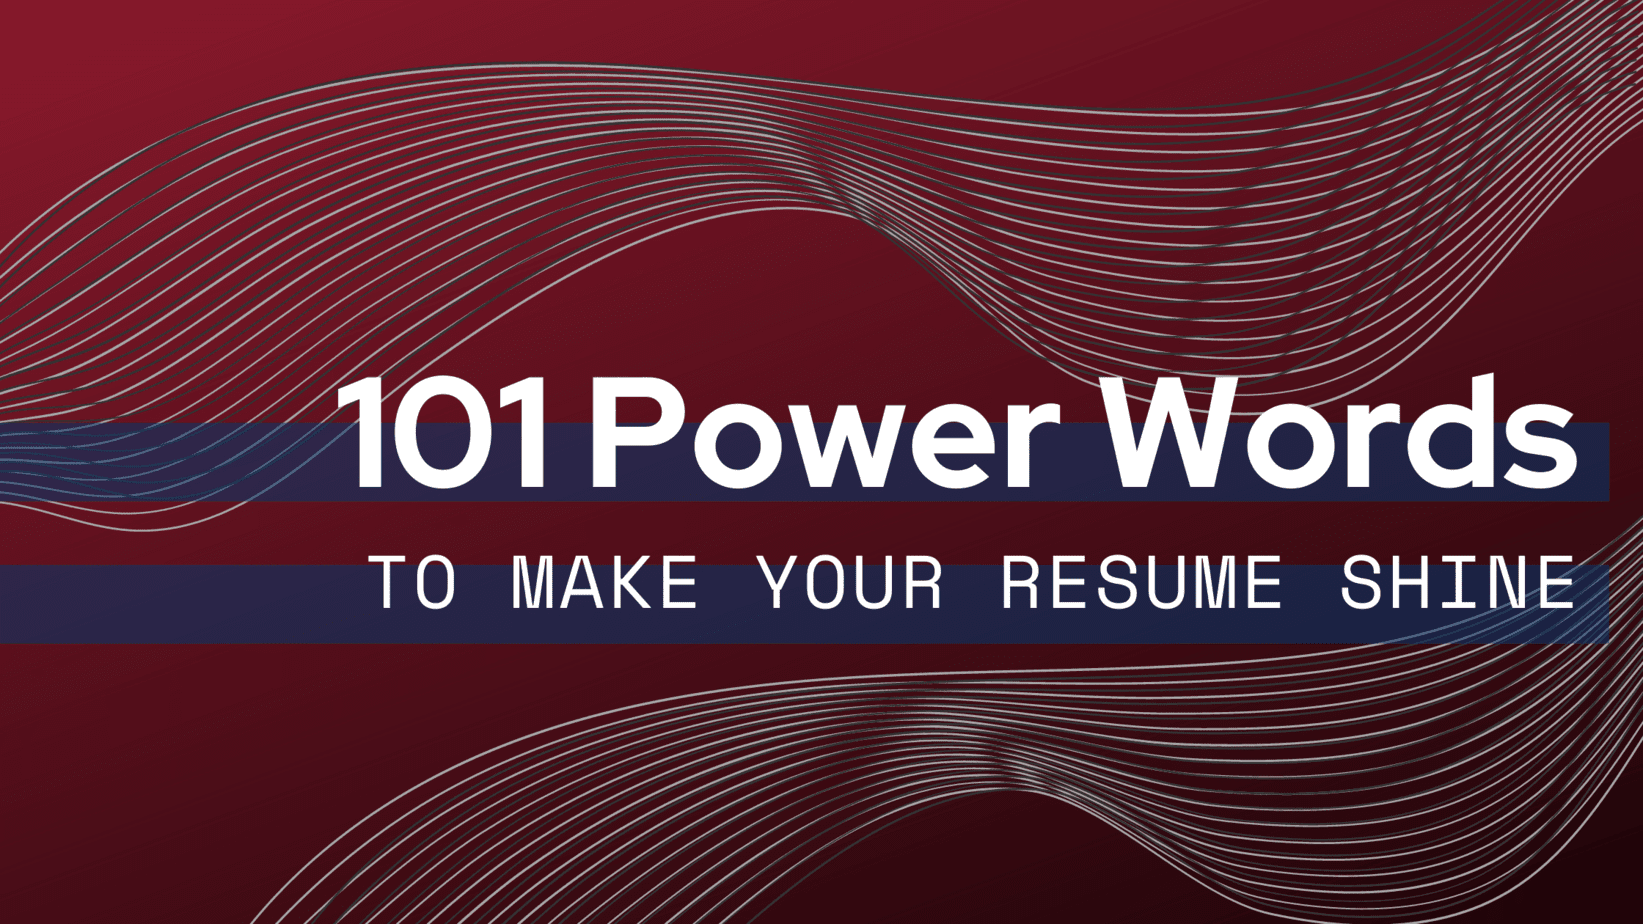 101 power words to make your resume shine